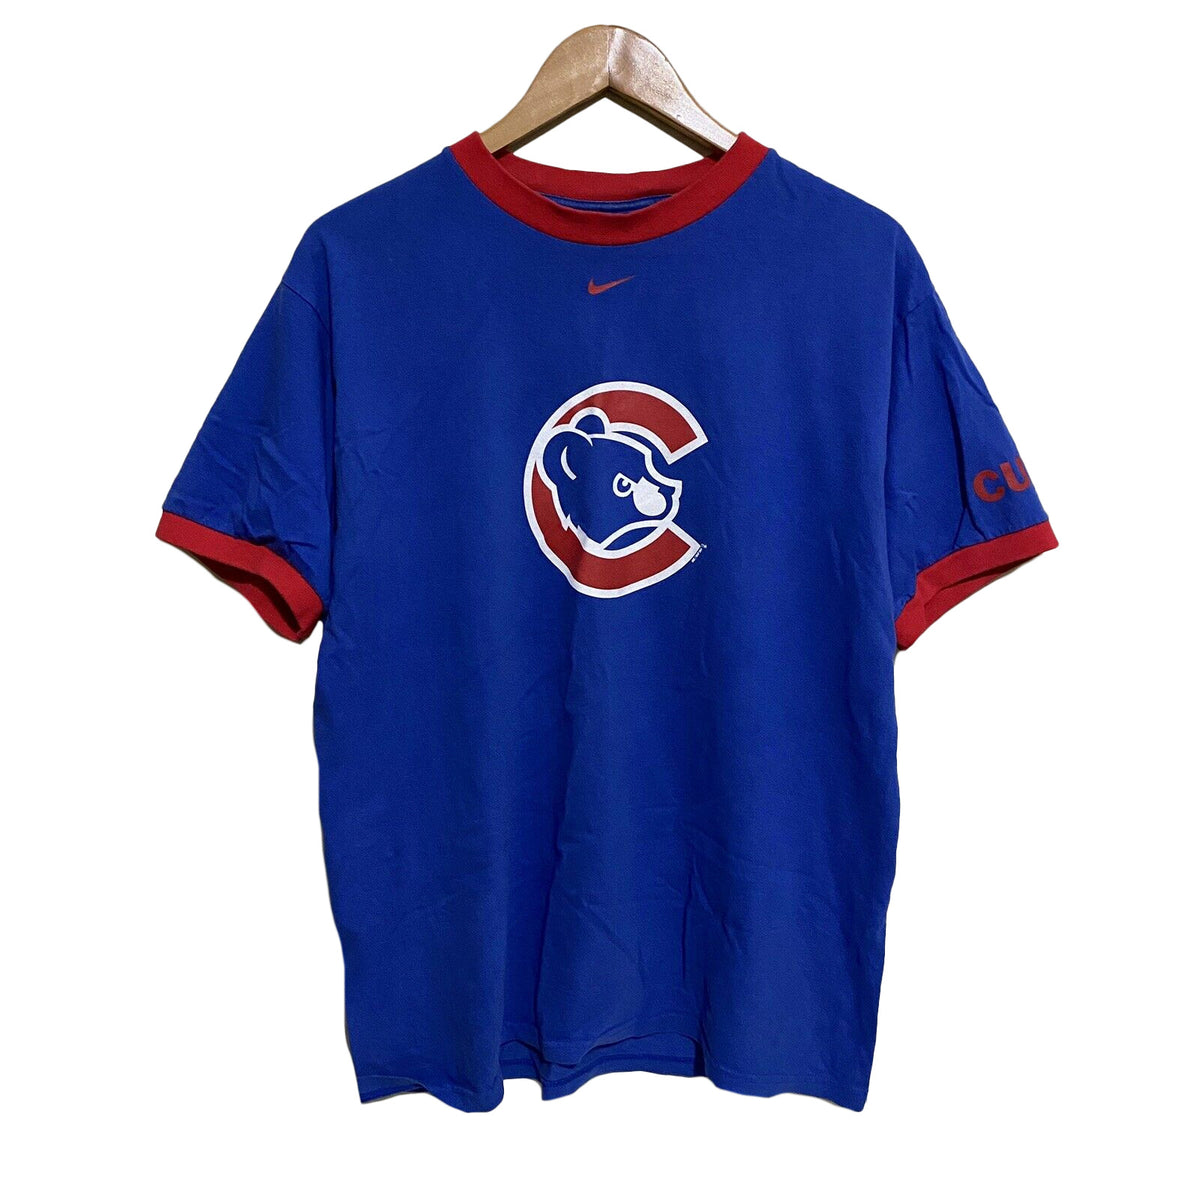 Chicago Cubs Nike 2005 Vintage Ringer T-Shirt Mens Medium